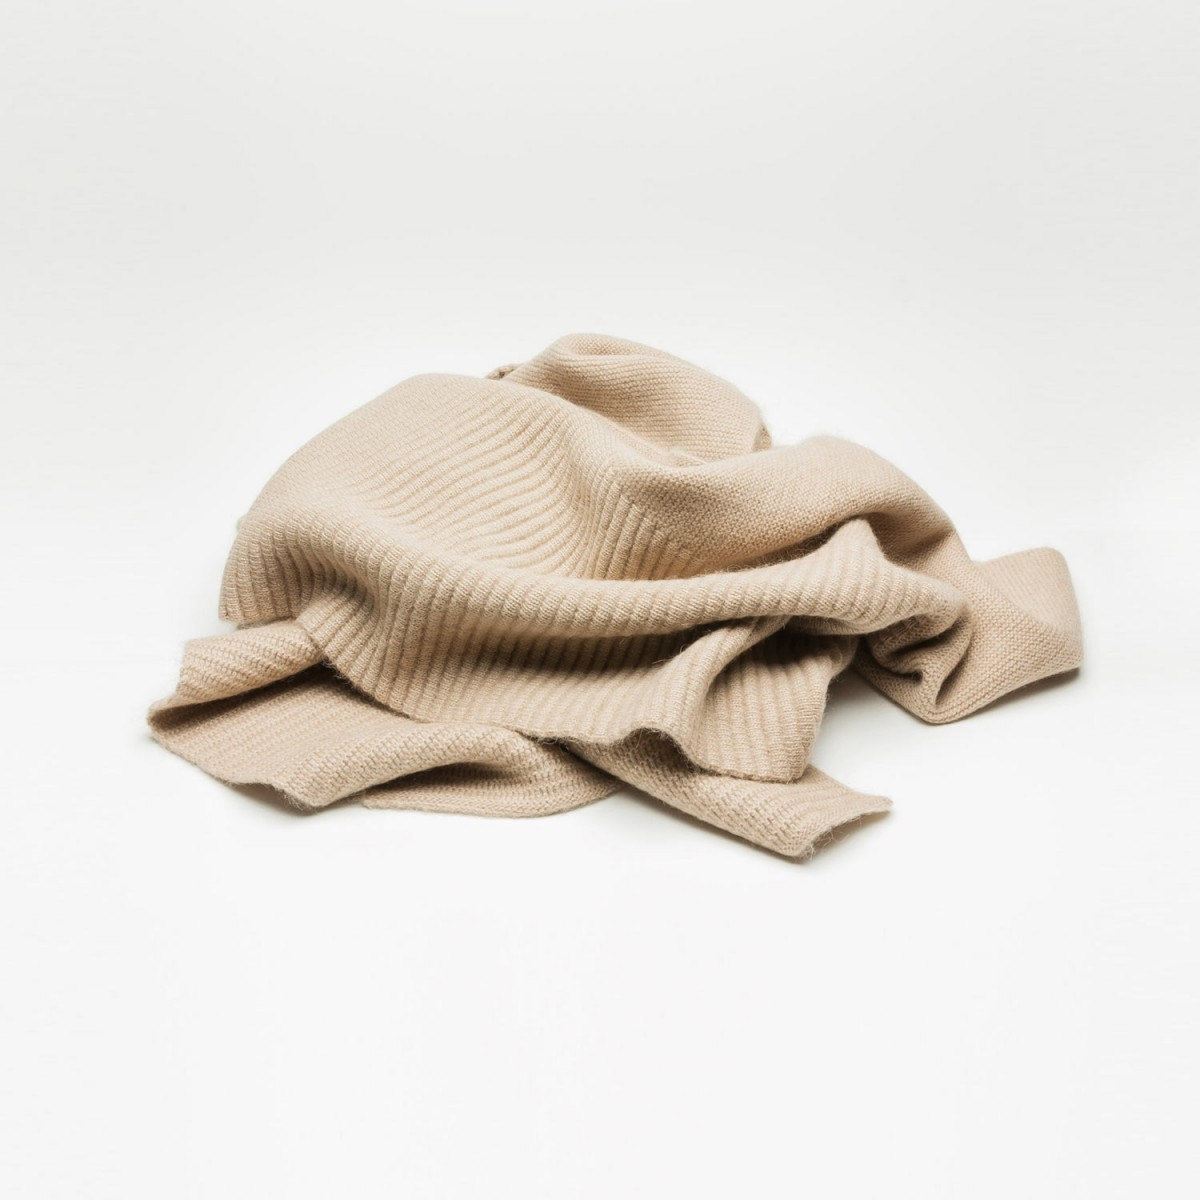 Rimma Tchilingarian The Oversized Camel Hair Scarf I Feinstes Baby Kamelhaar creme – ungefärbt